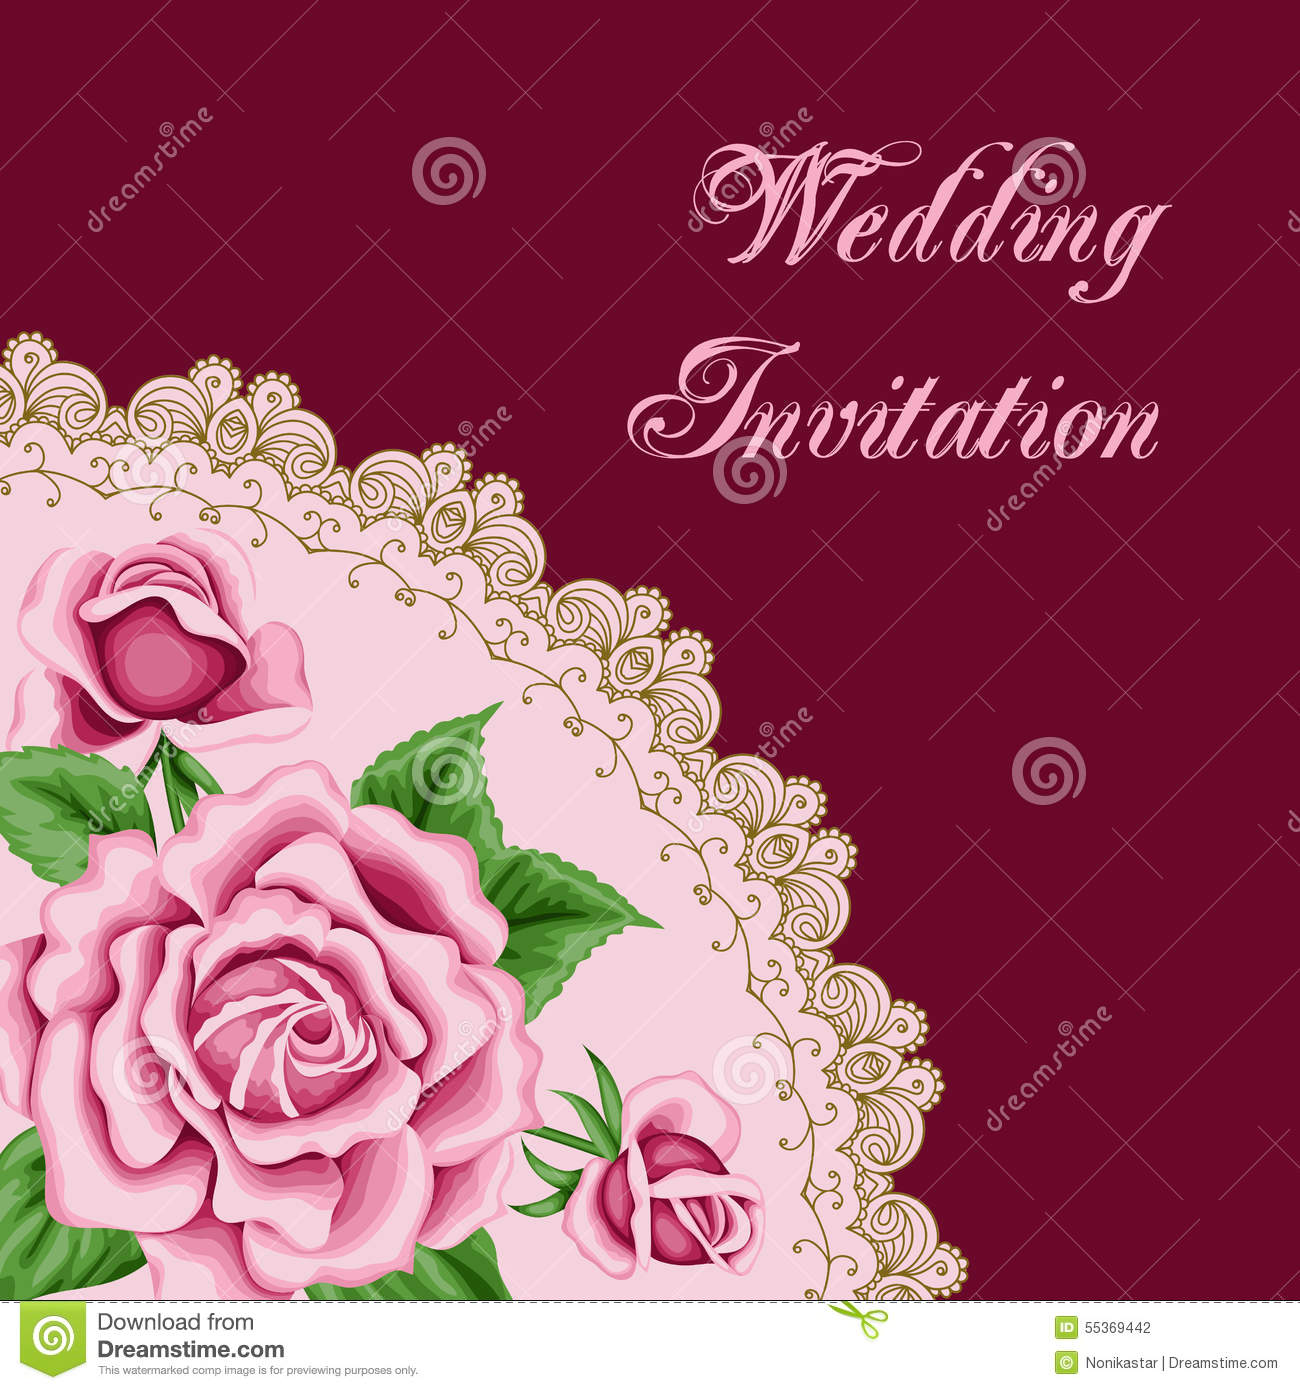 Vintage Wedding Invitation With Roses Stock Vector - Illustration of ...